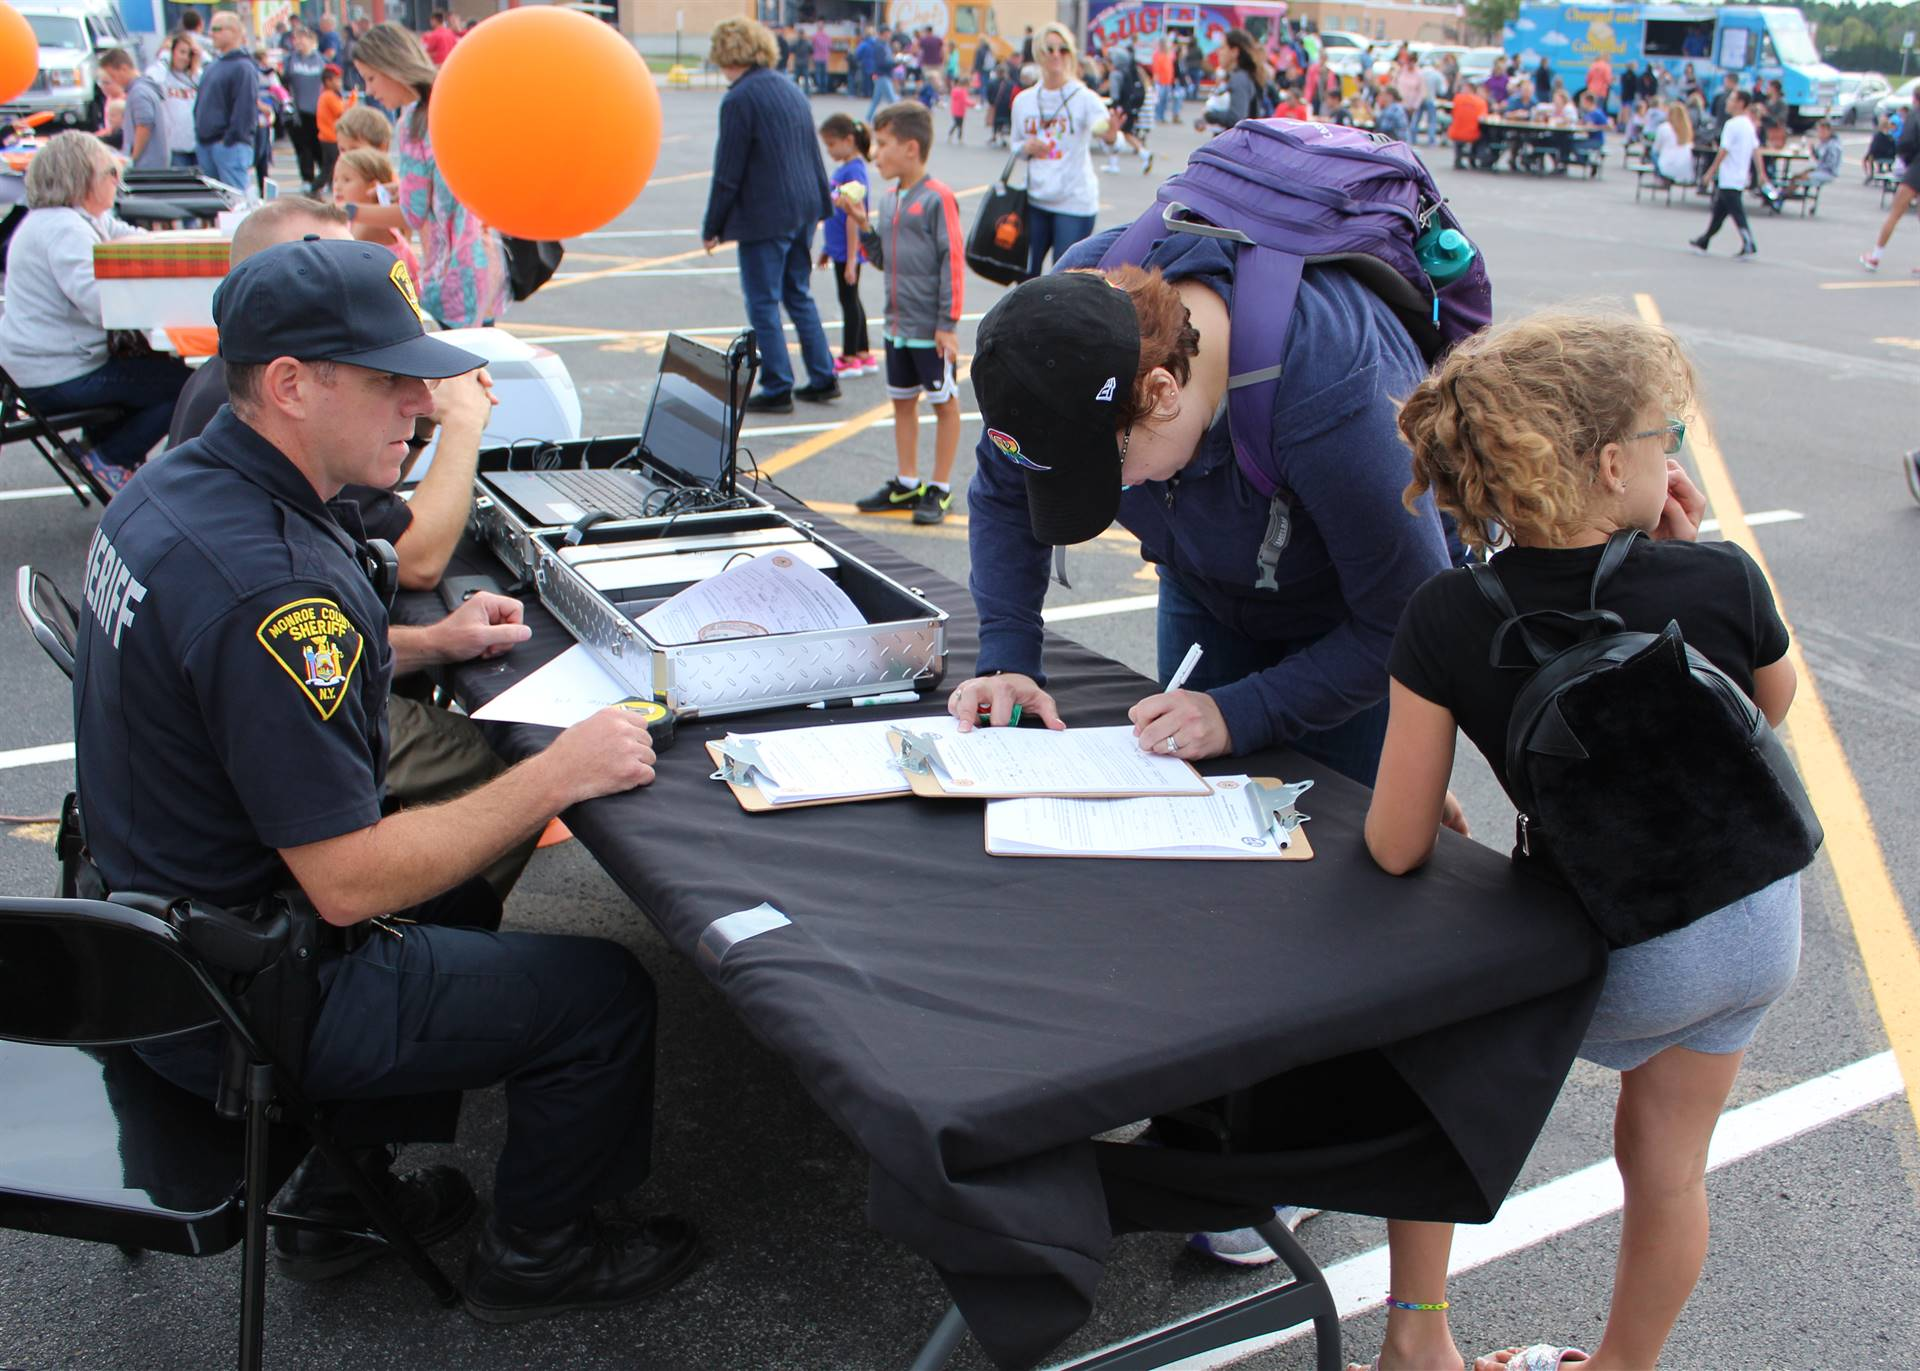 Visitors speak with community members at a table